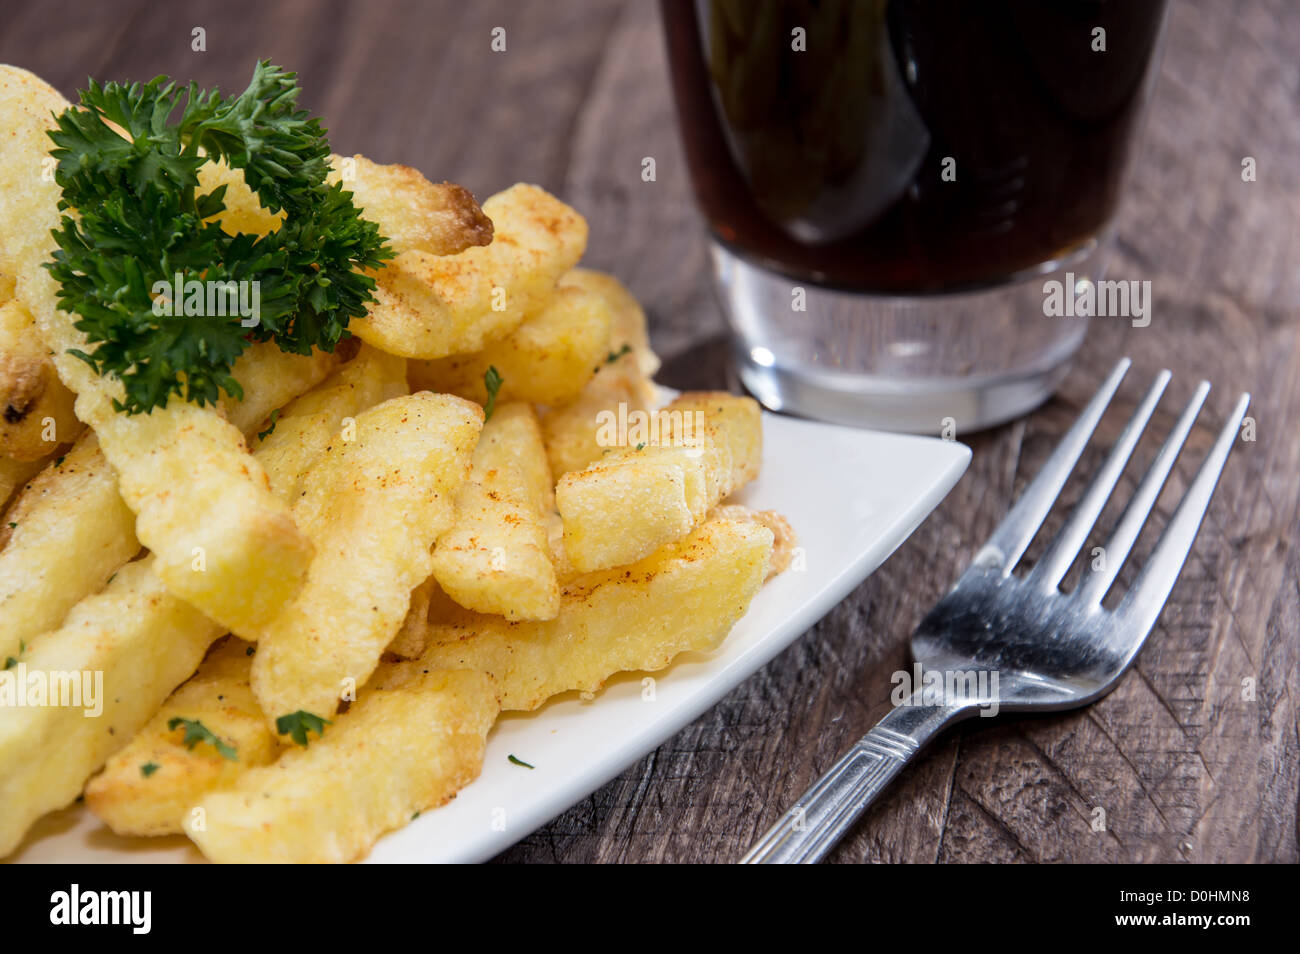 Plate with french fries on wooden background - Stock Image